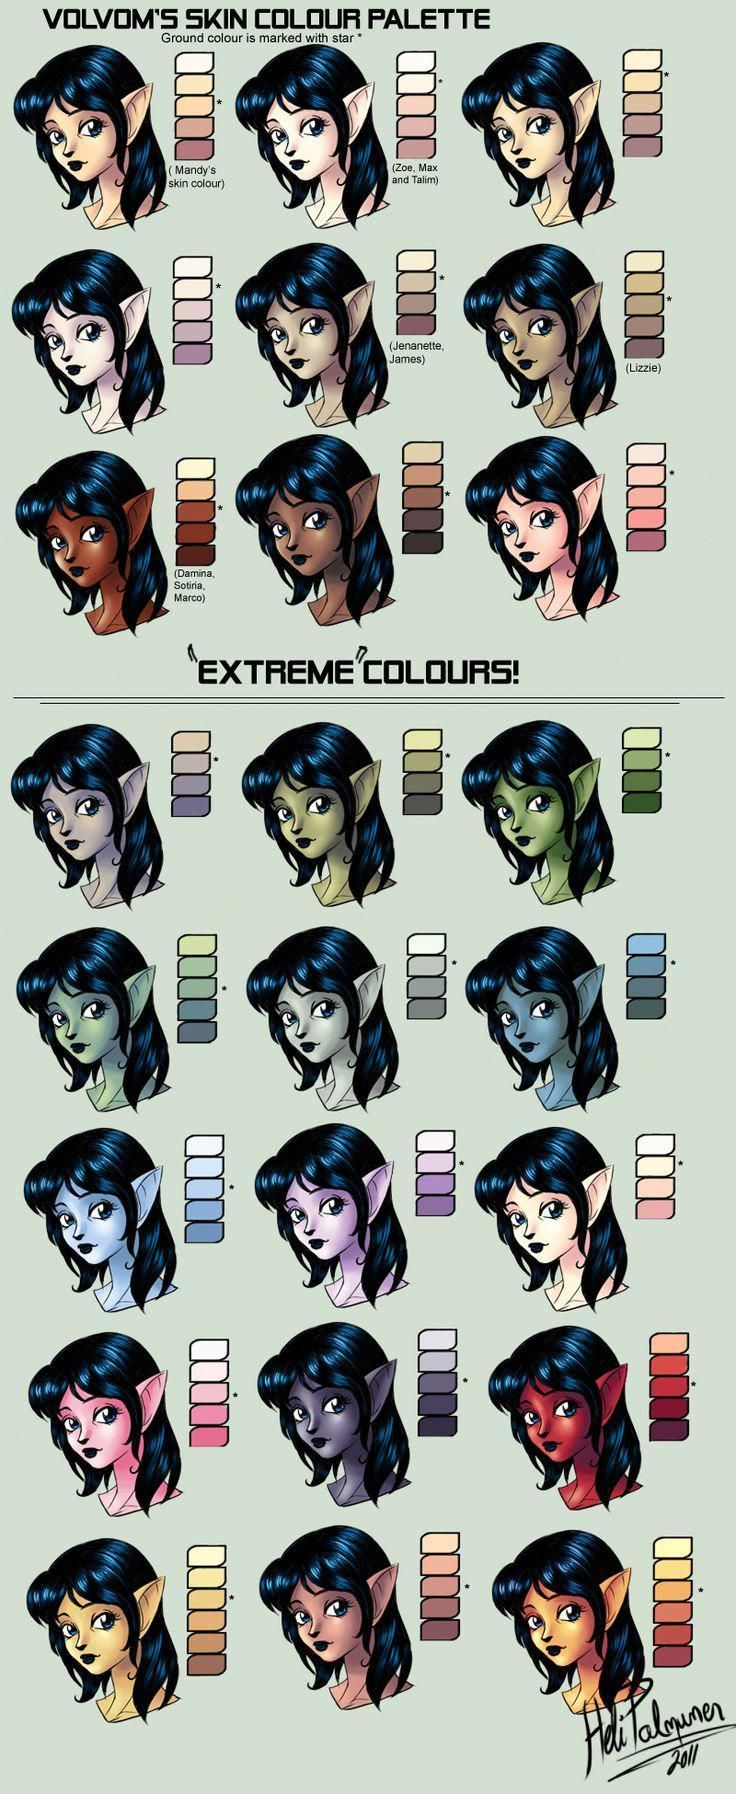 Please Click Here For More Drawingtips Skin Color Palette Skin Drawing Skin Palette